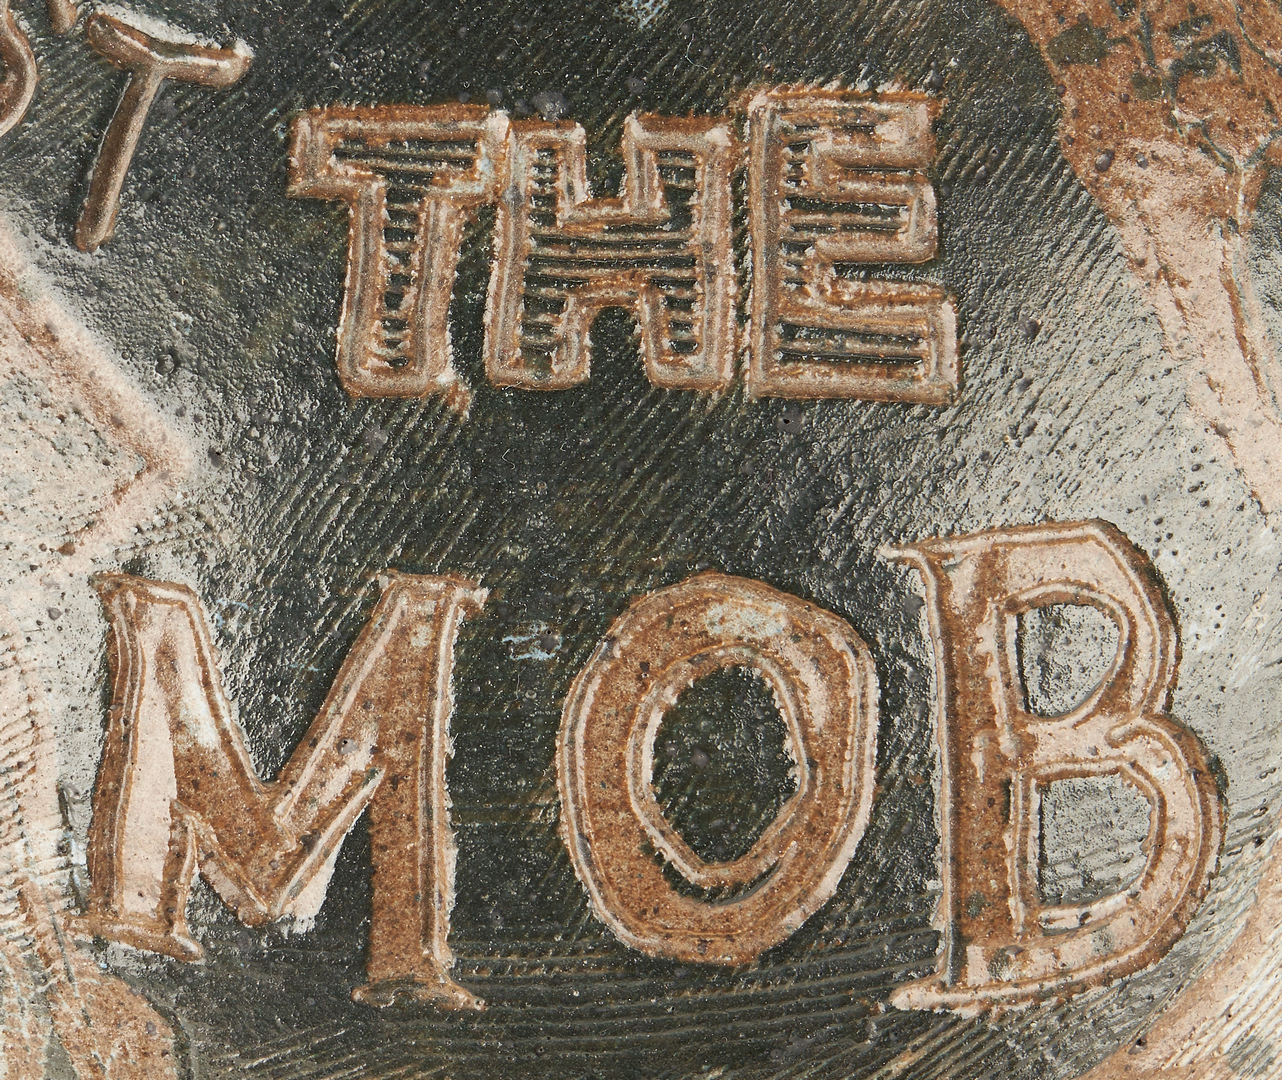 """Lot 175: Charles Counts Civil Rights Pottery Jar, """"Against the Mob"""""""